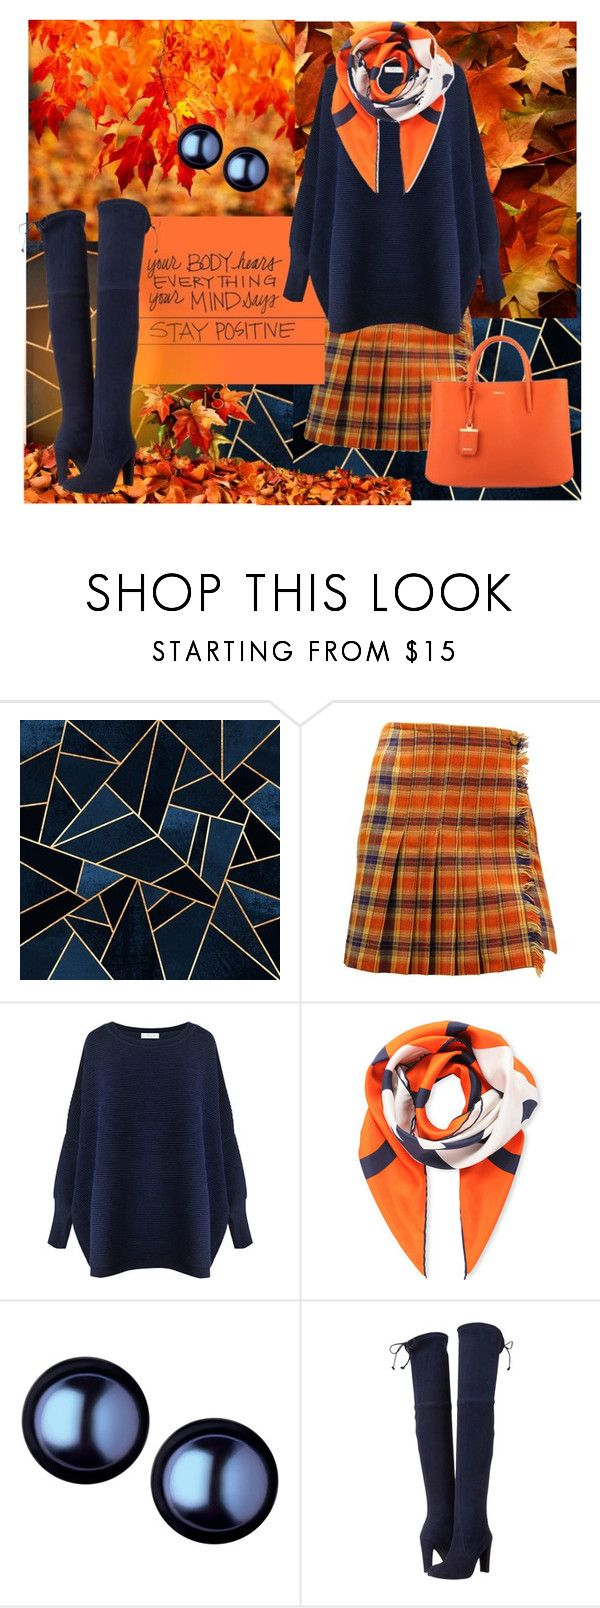 """Stay positive"" by diane-randle ❤ liked on Polyvore featuring Missoni, Paisie, Loewe, Links of London, Stuart Weitzman and DKNY"